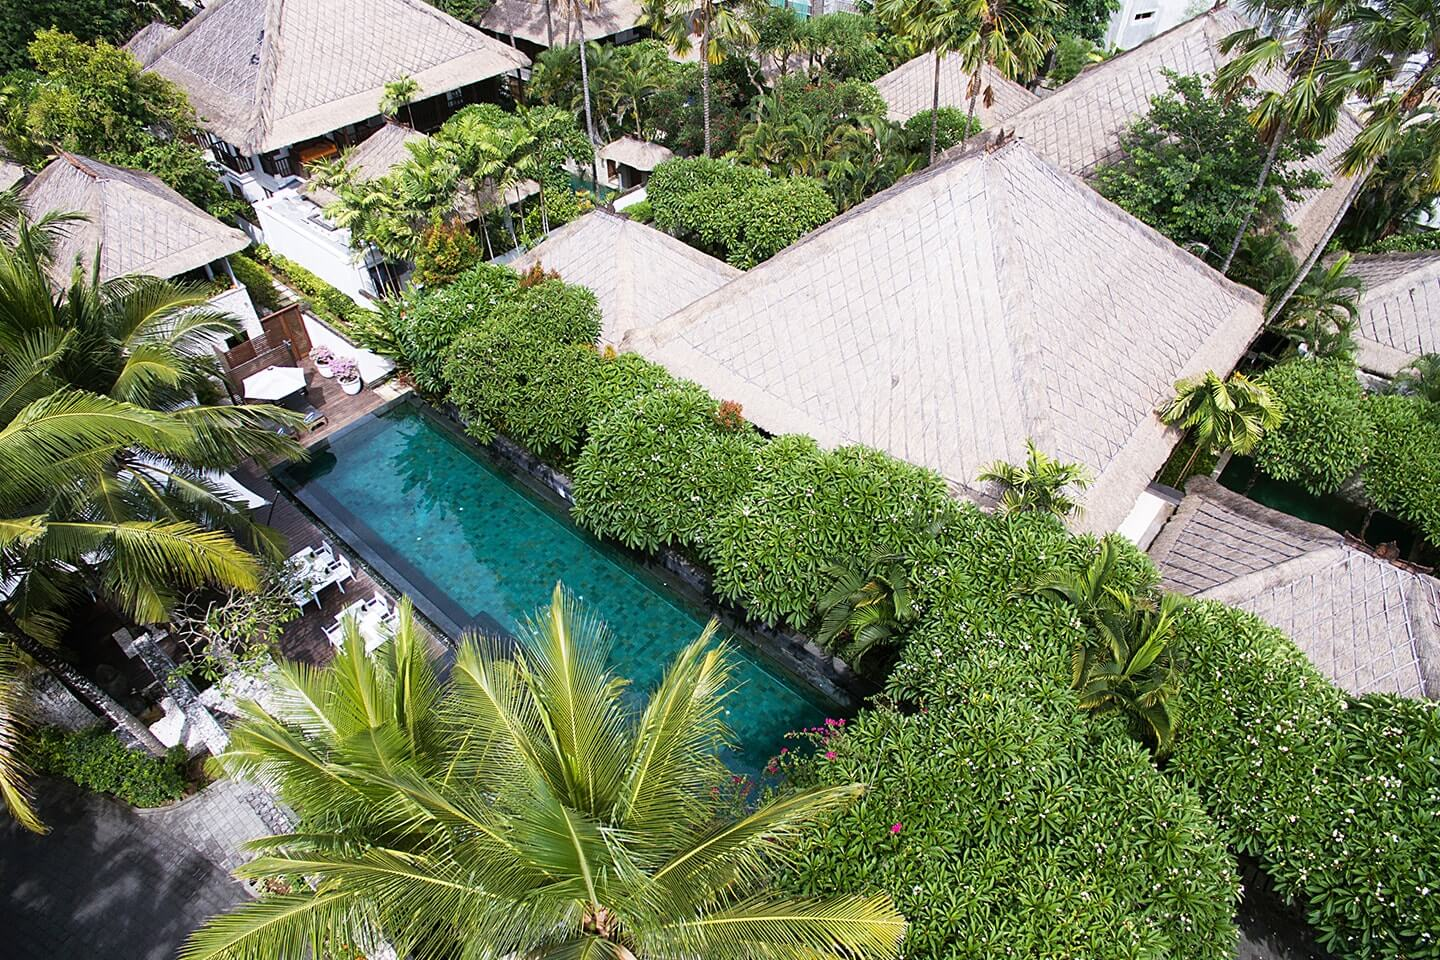 Luxury Villa in Jimbaran Bay, Bali